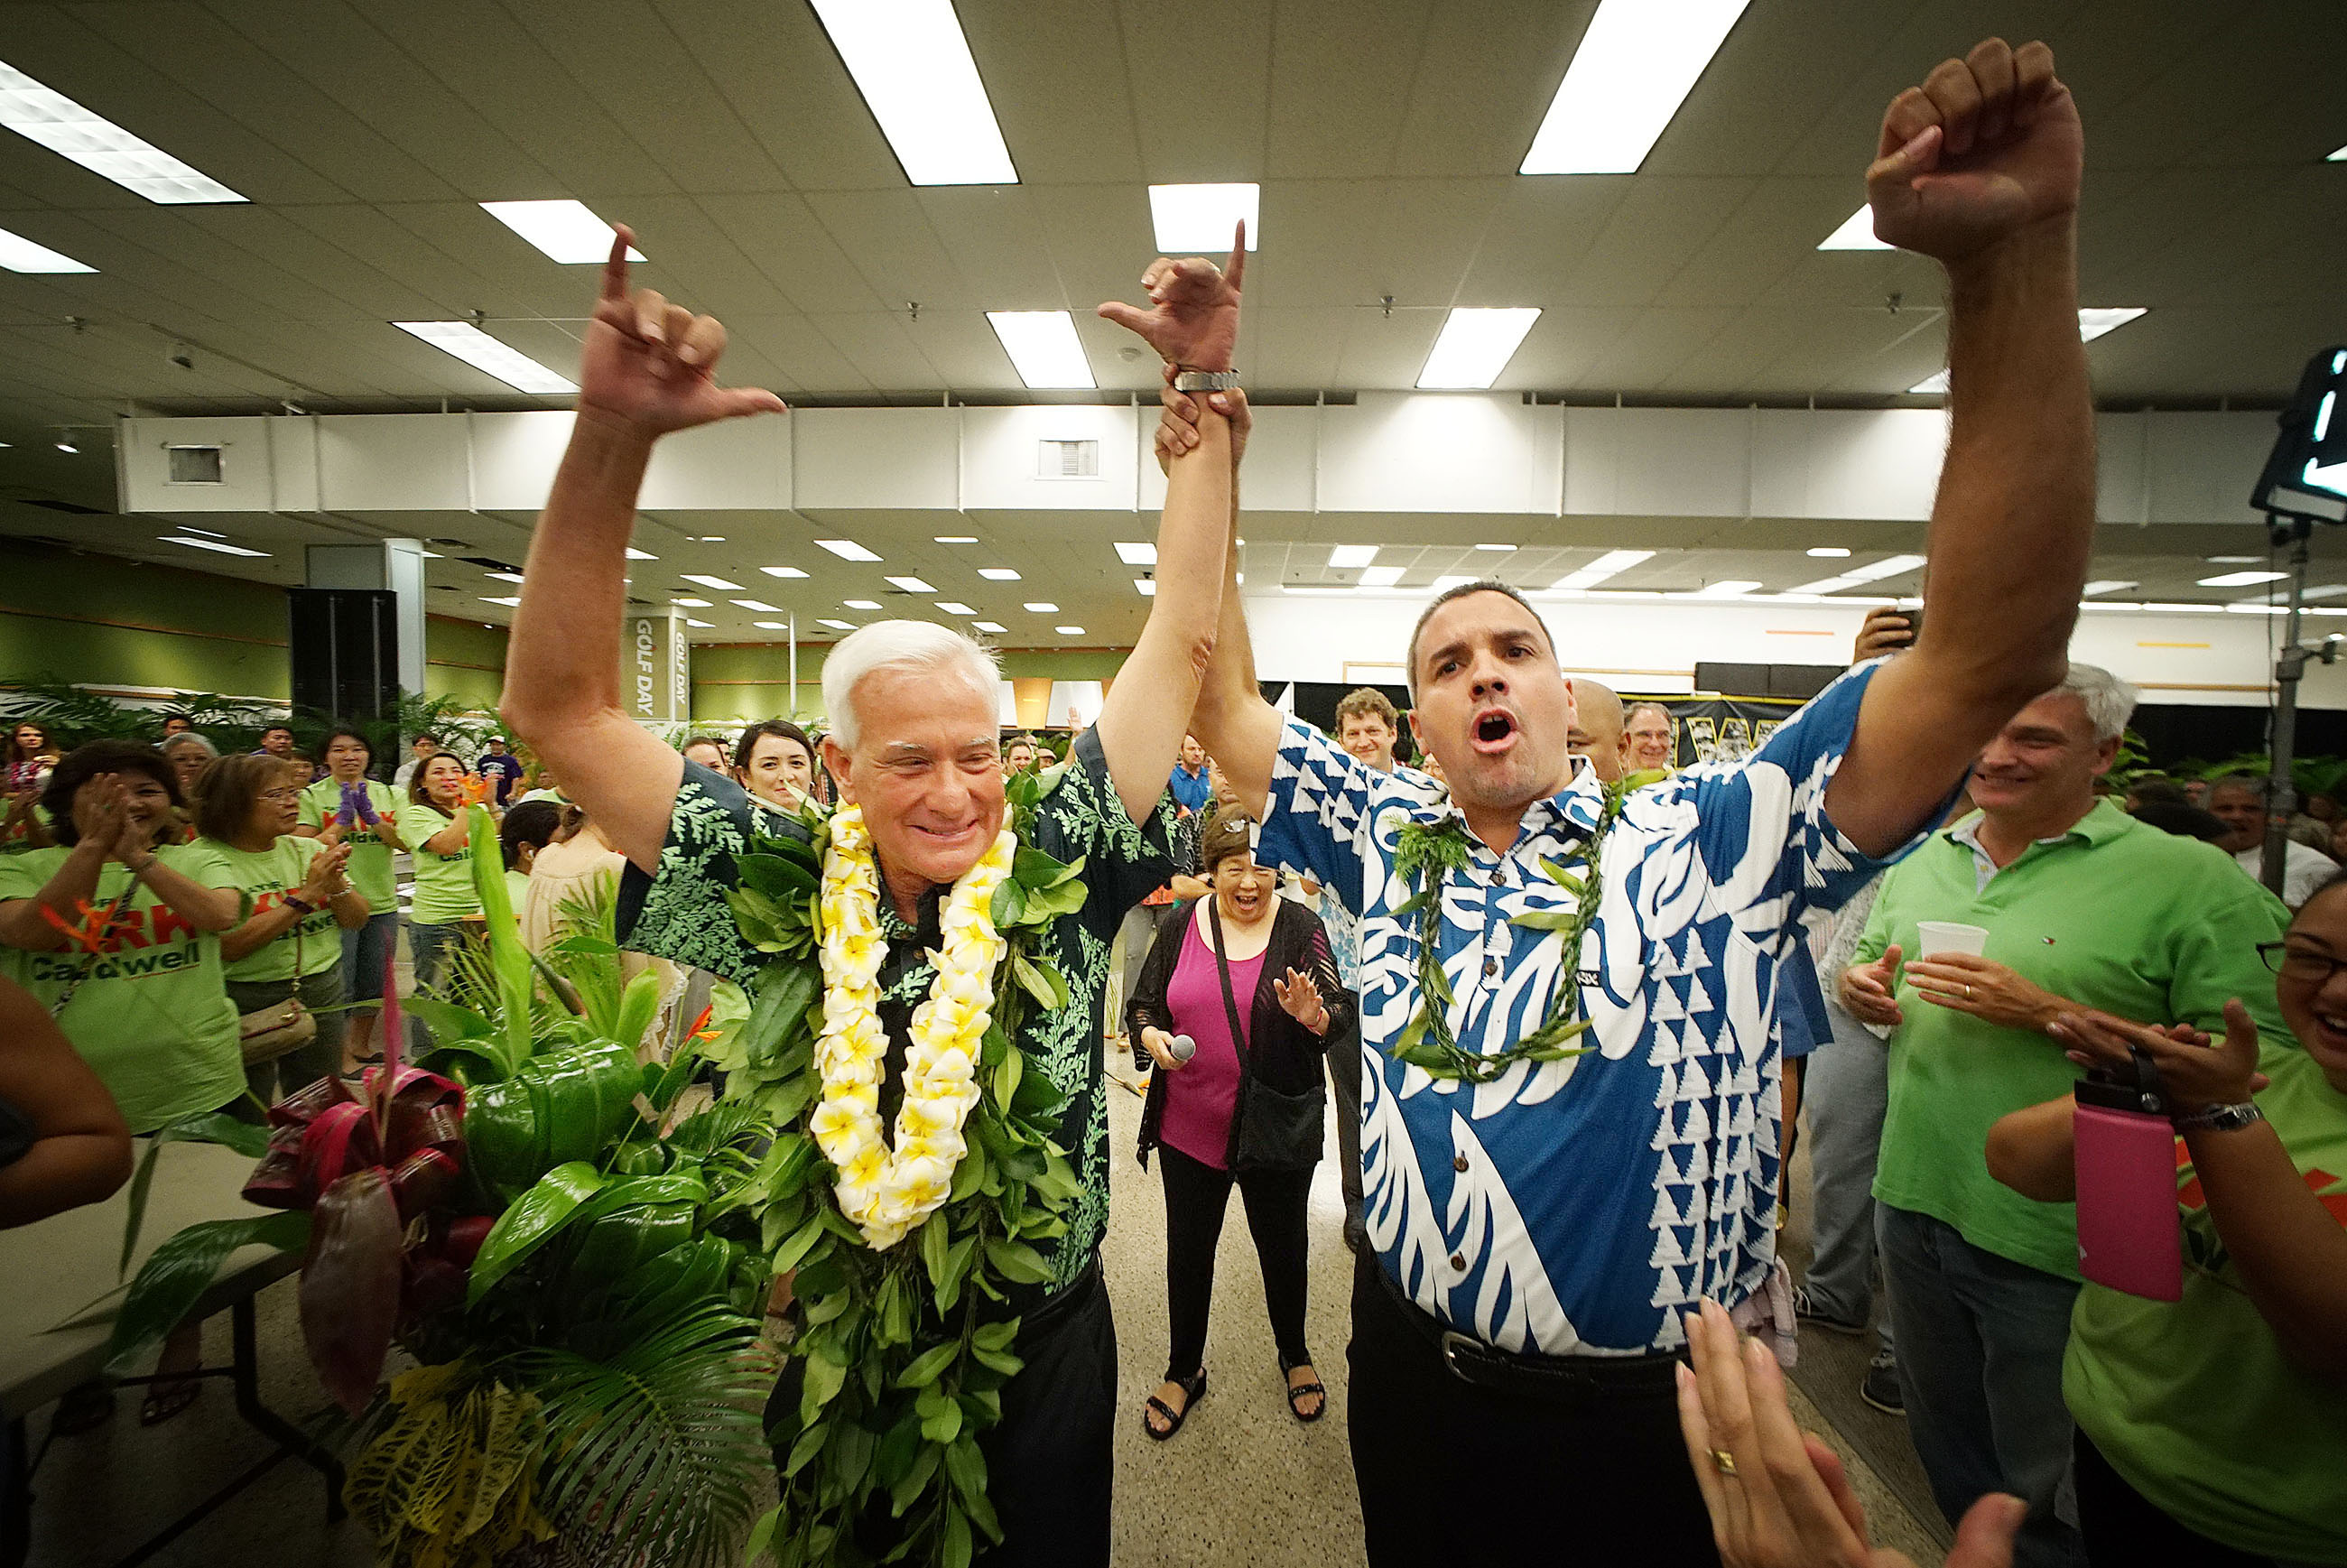 <p>Nov. 8: Honolulu Mayor Kirk Caldwell exults with City Councilman Ikaika Anderson as election night results show Caldwell winning his re-election bid. <em>Cory Lum/Civil Beat</em></p>